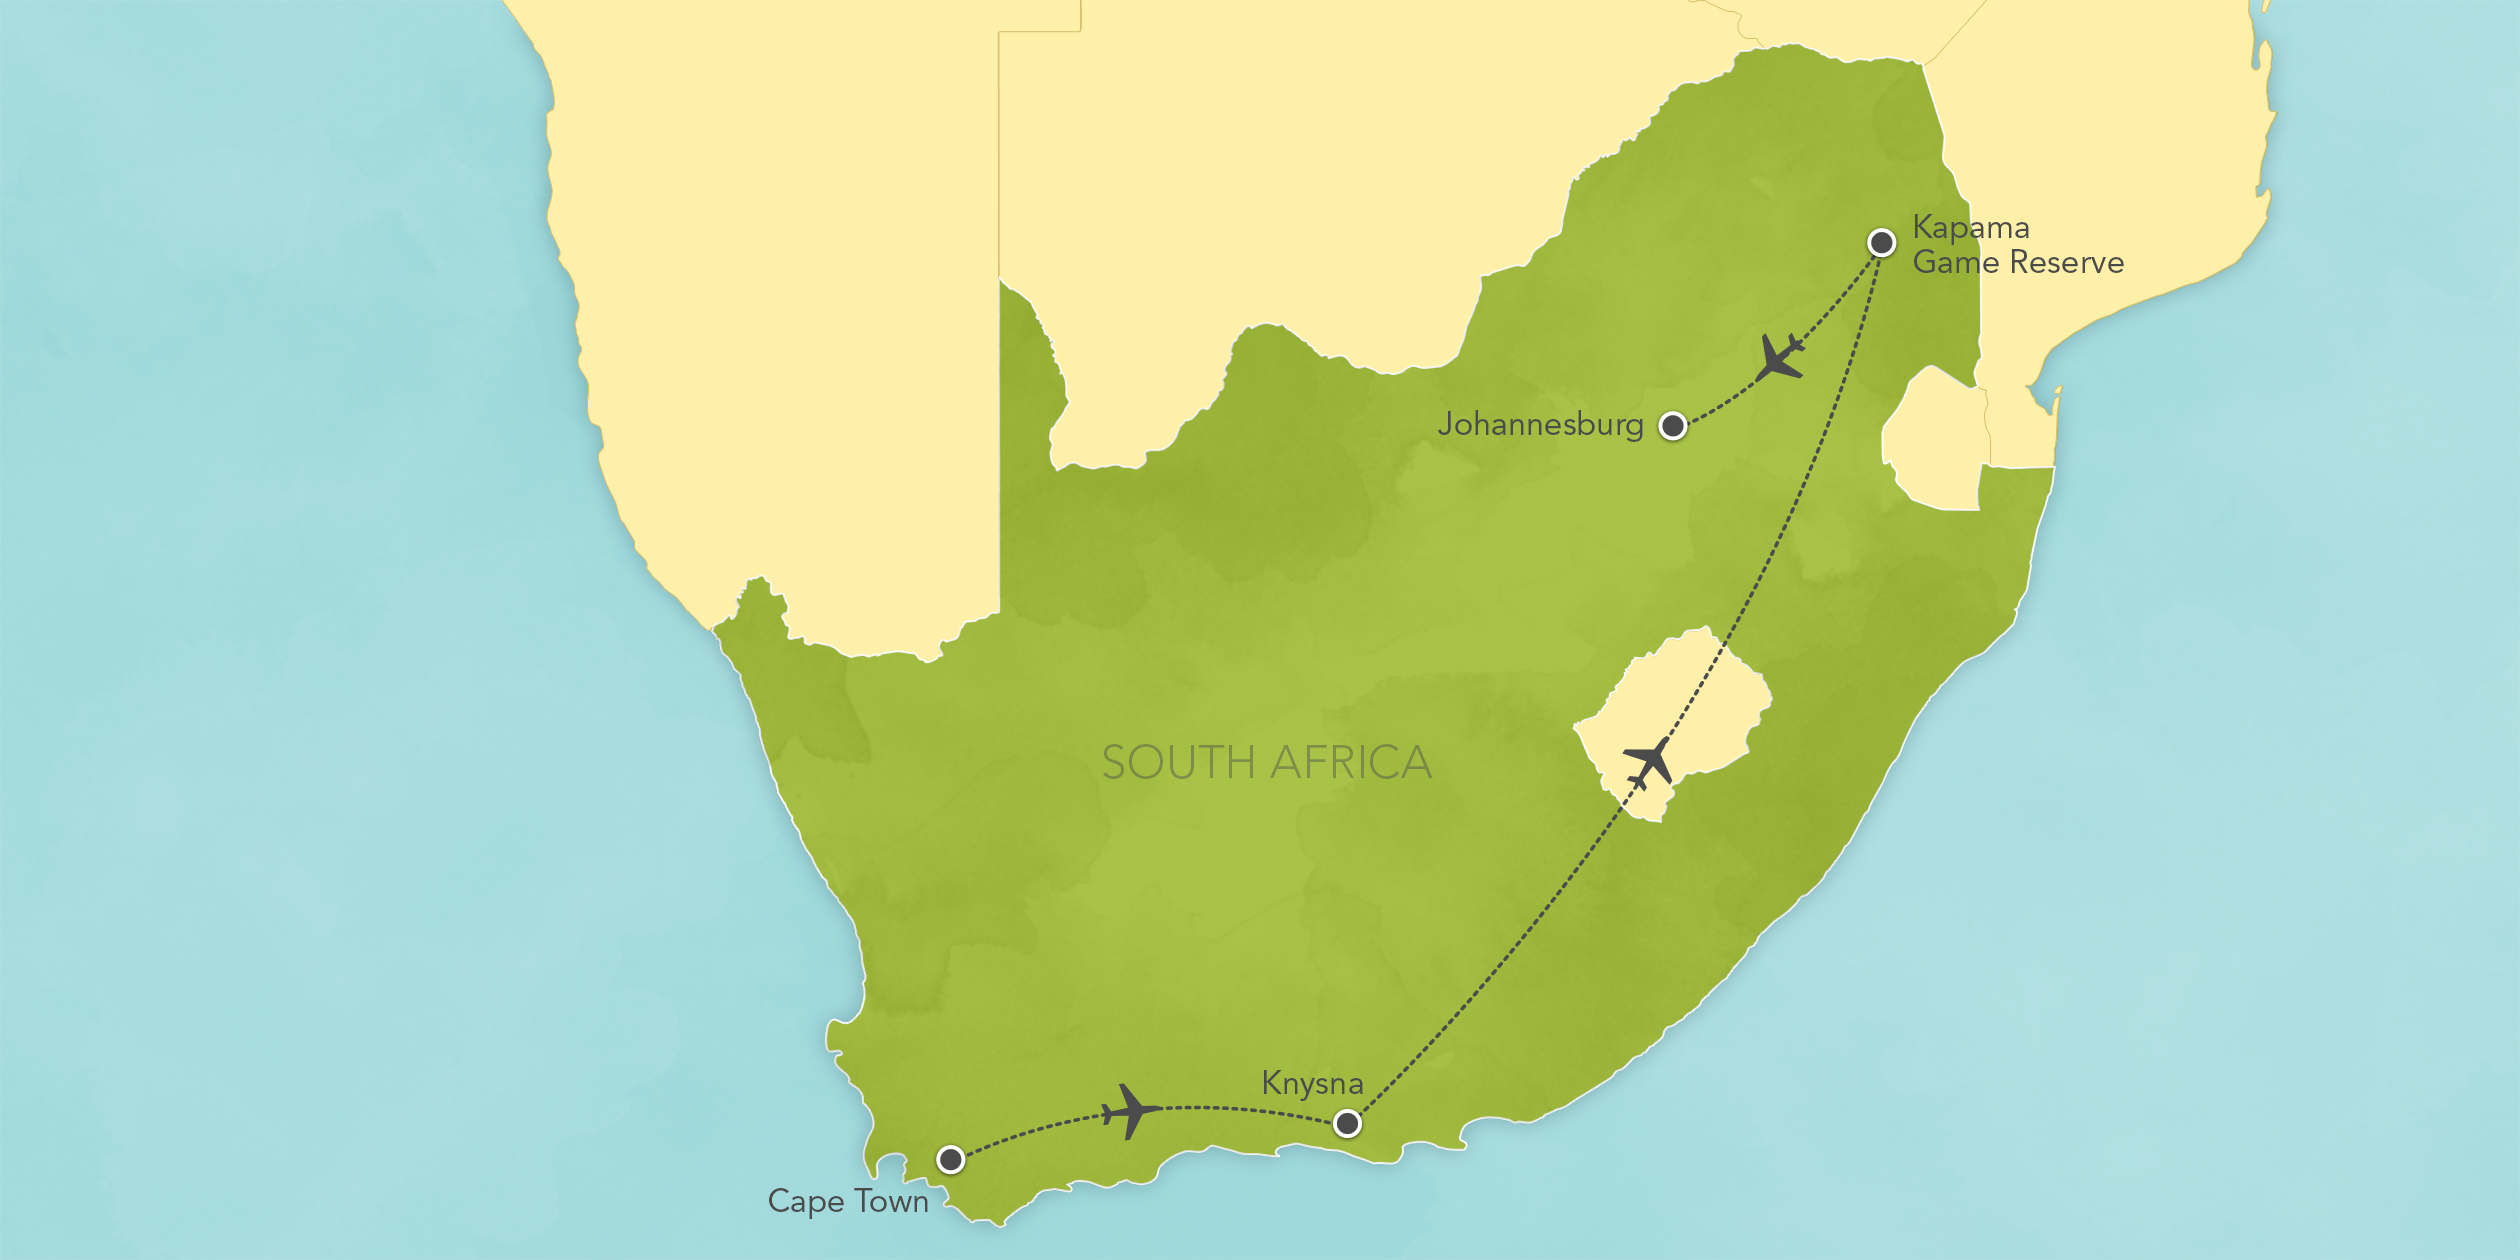 Map for South Africa Safari: Cape Town, Knysna, Kapama Game Reserve 2019